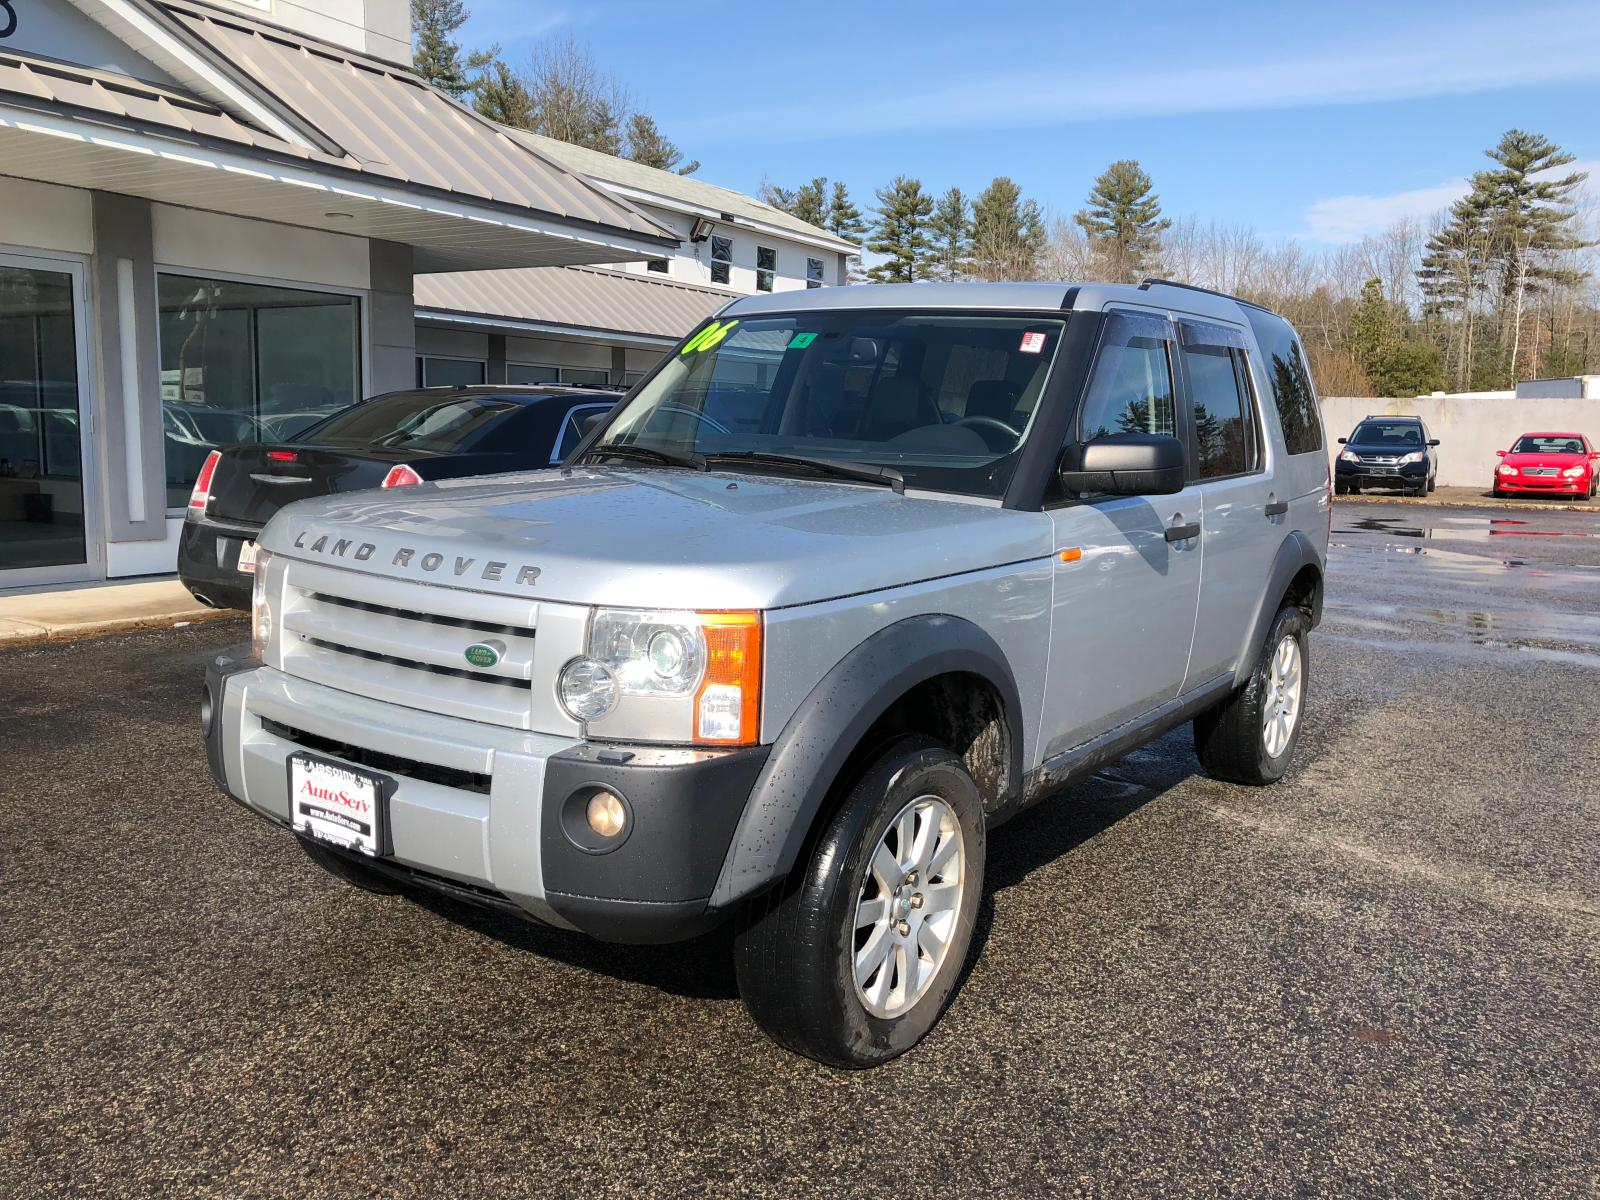 of cert rover title sale landrover auctions des moines for hse black en salvage ia right view carfinder lot copart on land online in auto